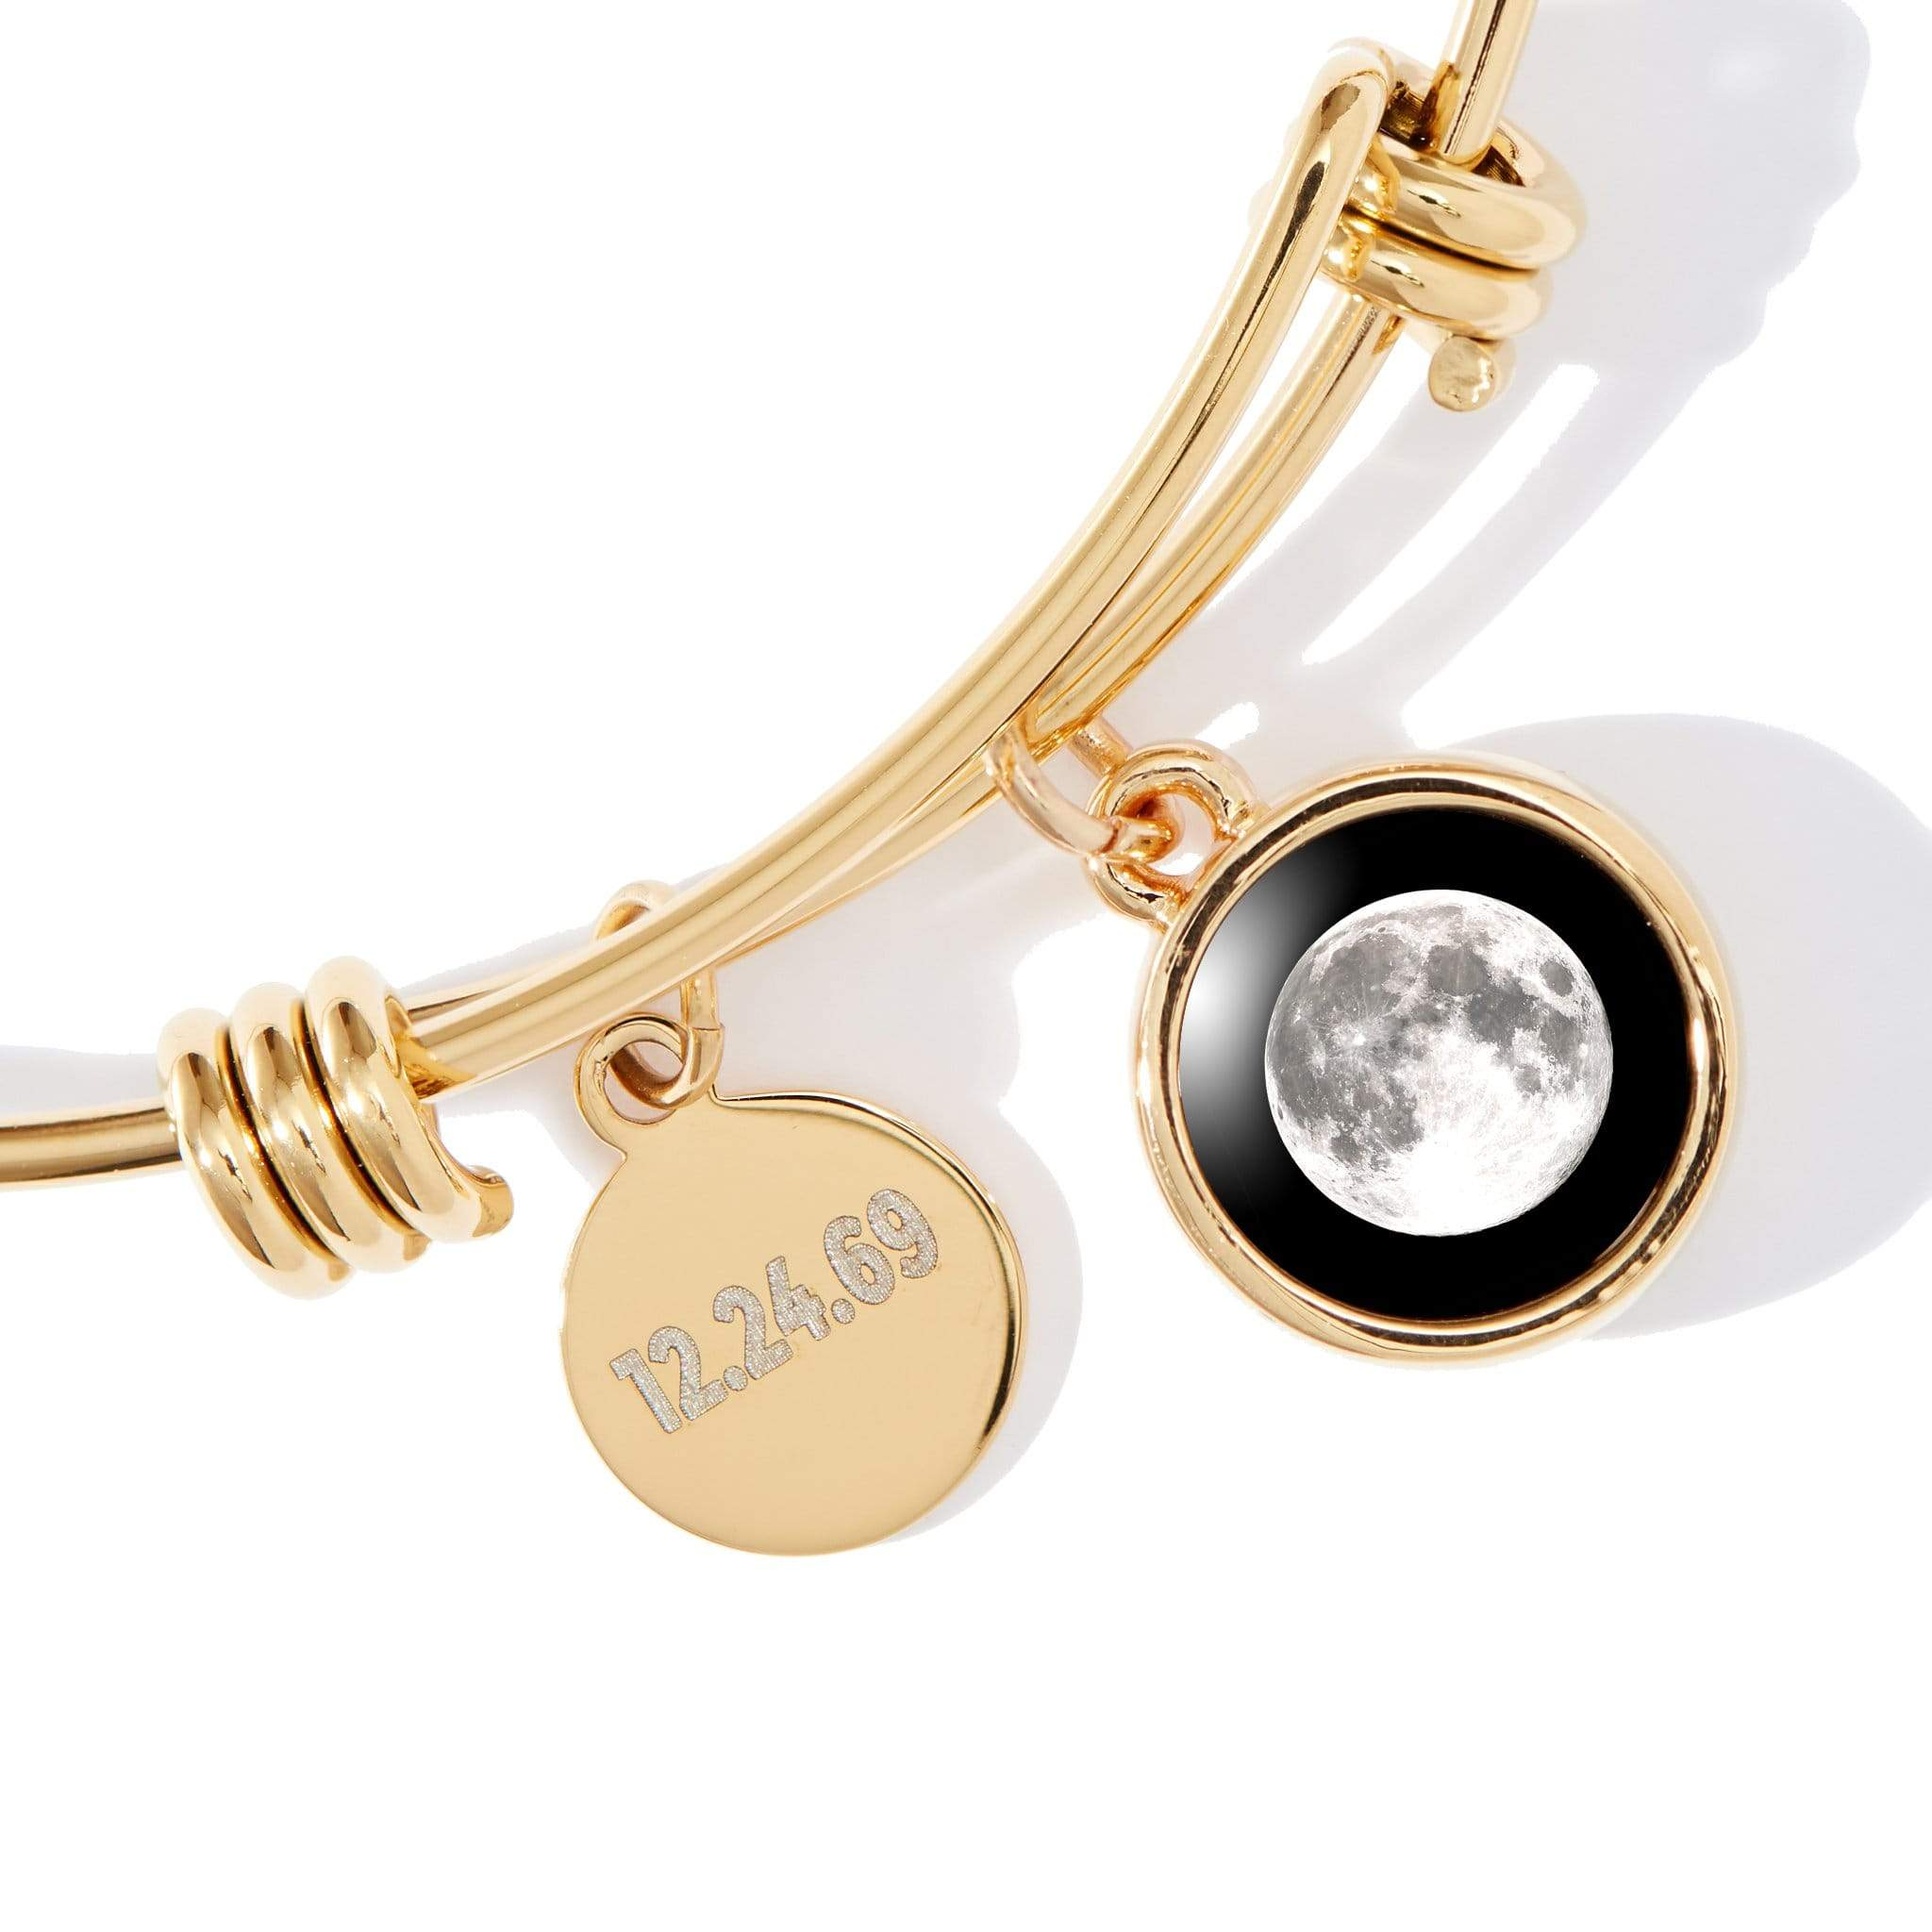 Gold Cosmic Spiral Ring and Modern Moon Bangle Bracelet Bundle